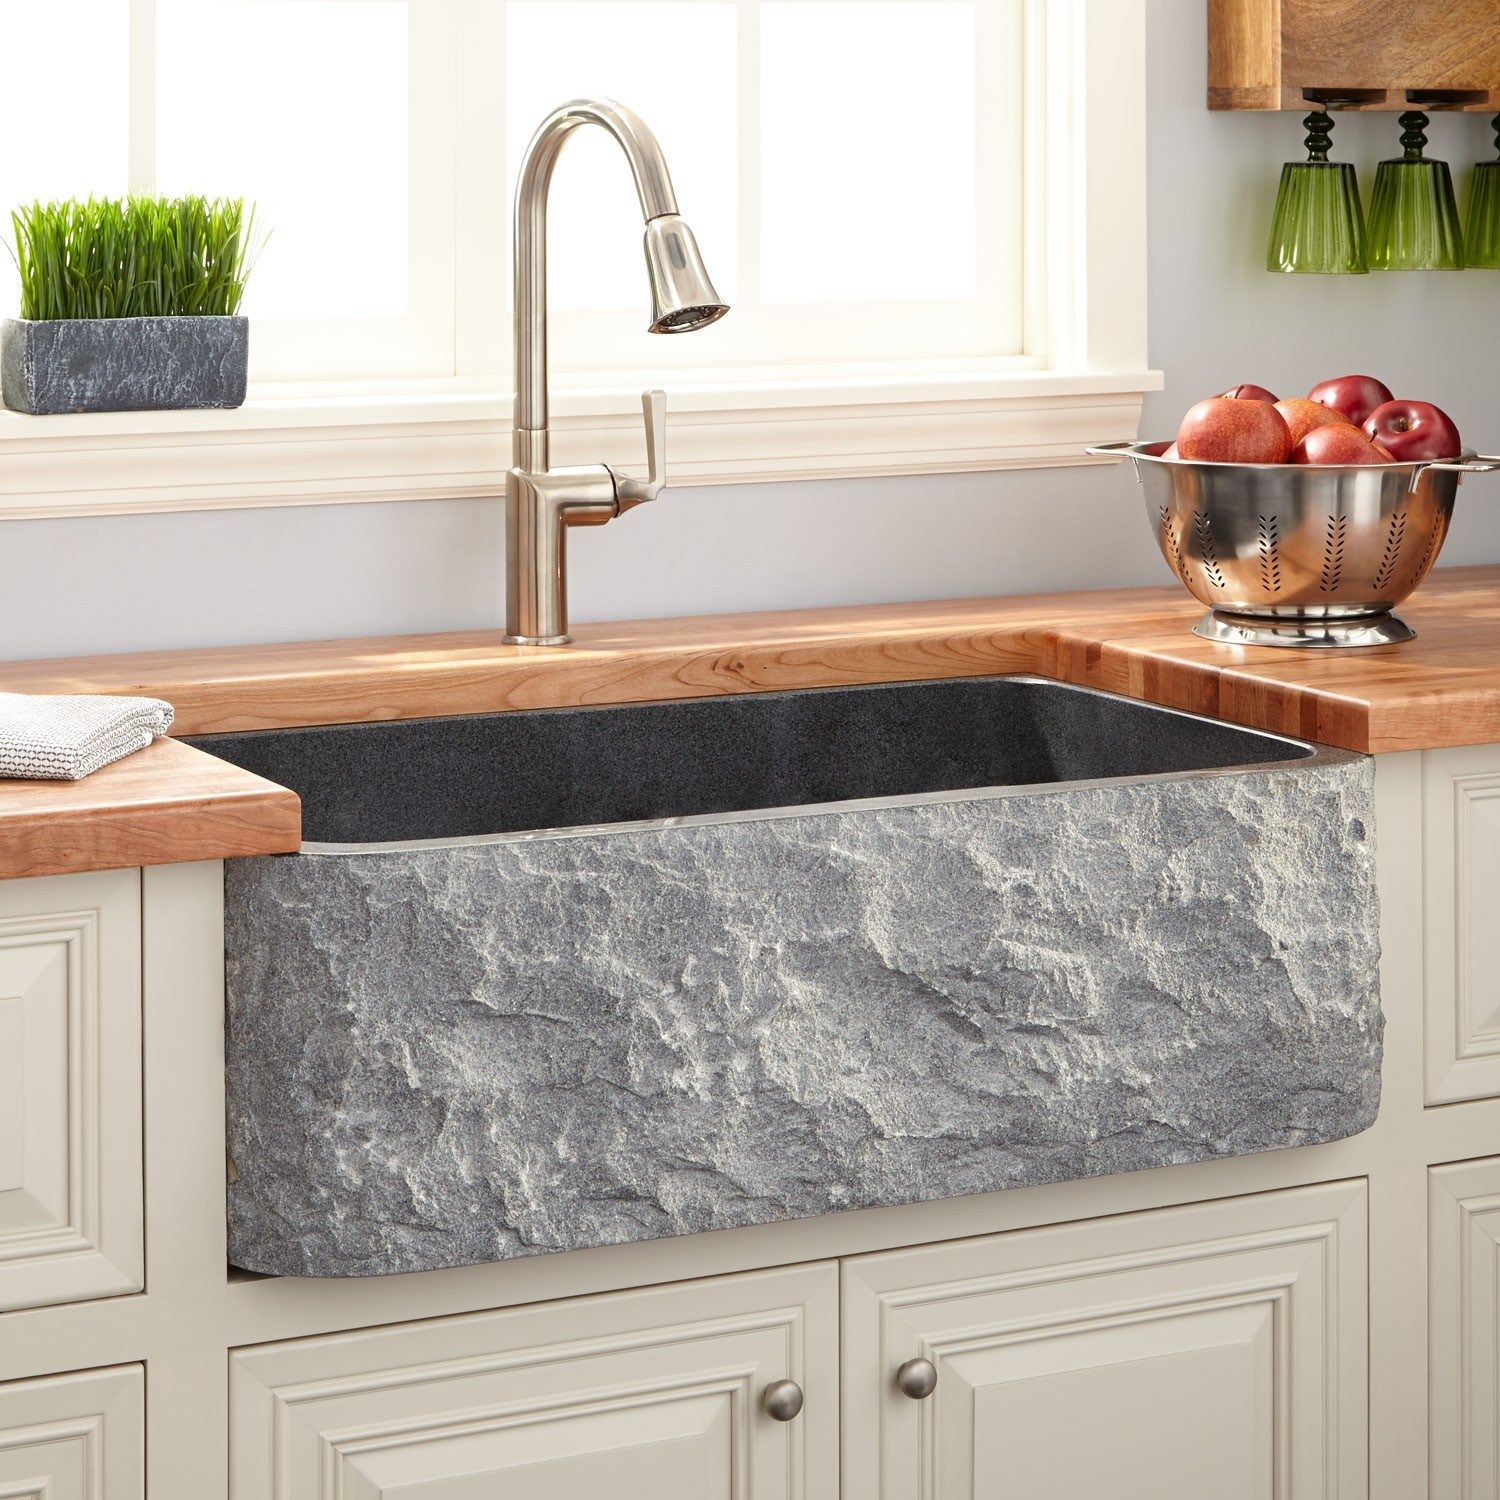 27 Awesome Granite Composite Farmhouse Sink Daily Home List